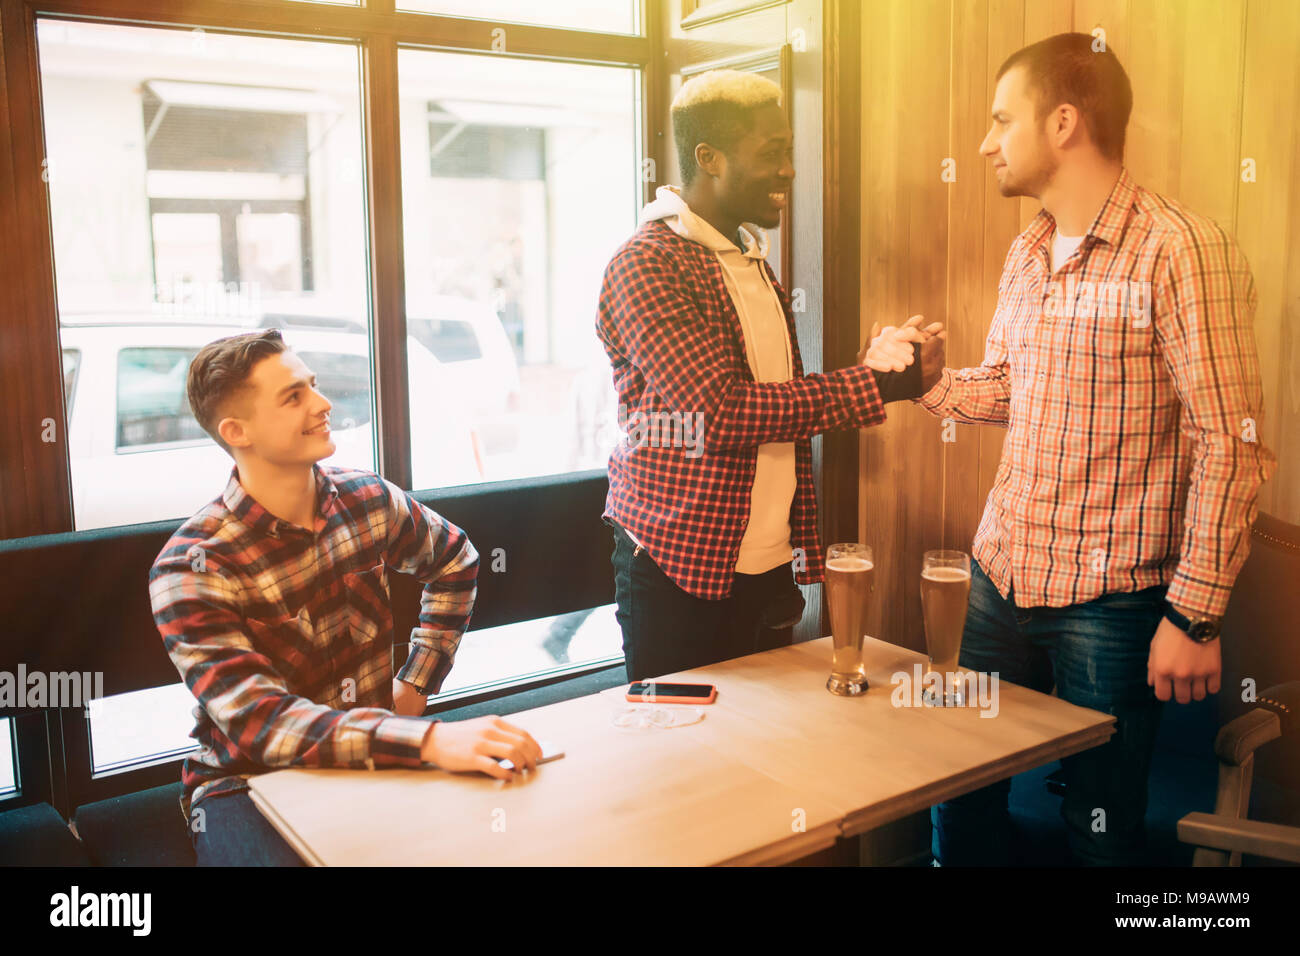 Happy to finally meet old male friends in bar. Shaking hands and smiling. Stock Photo